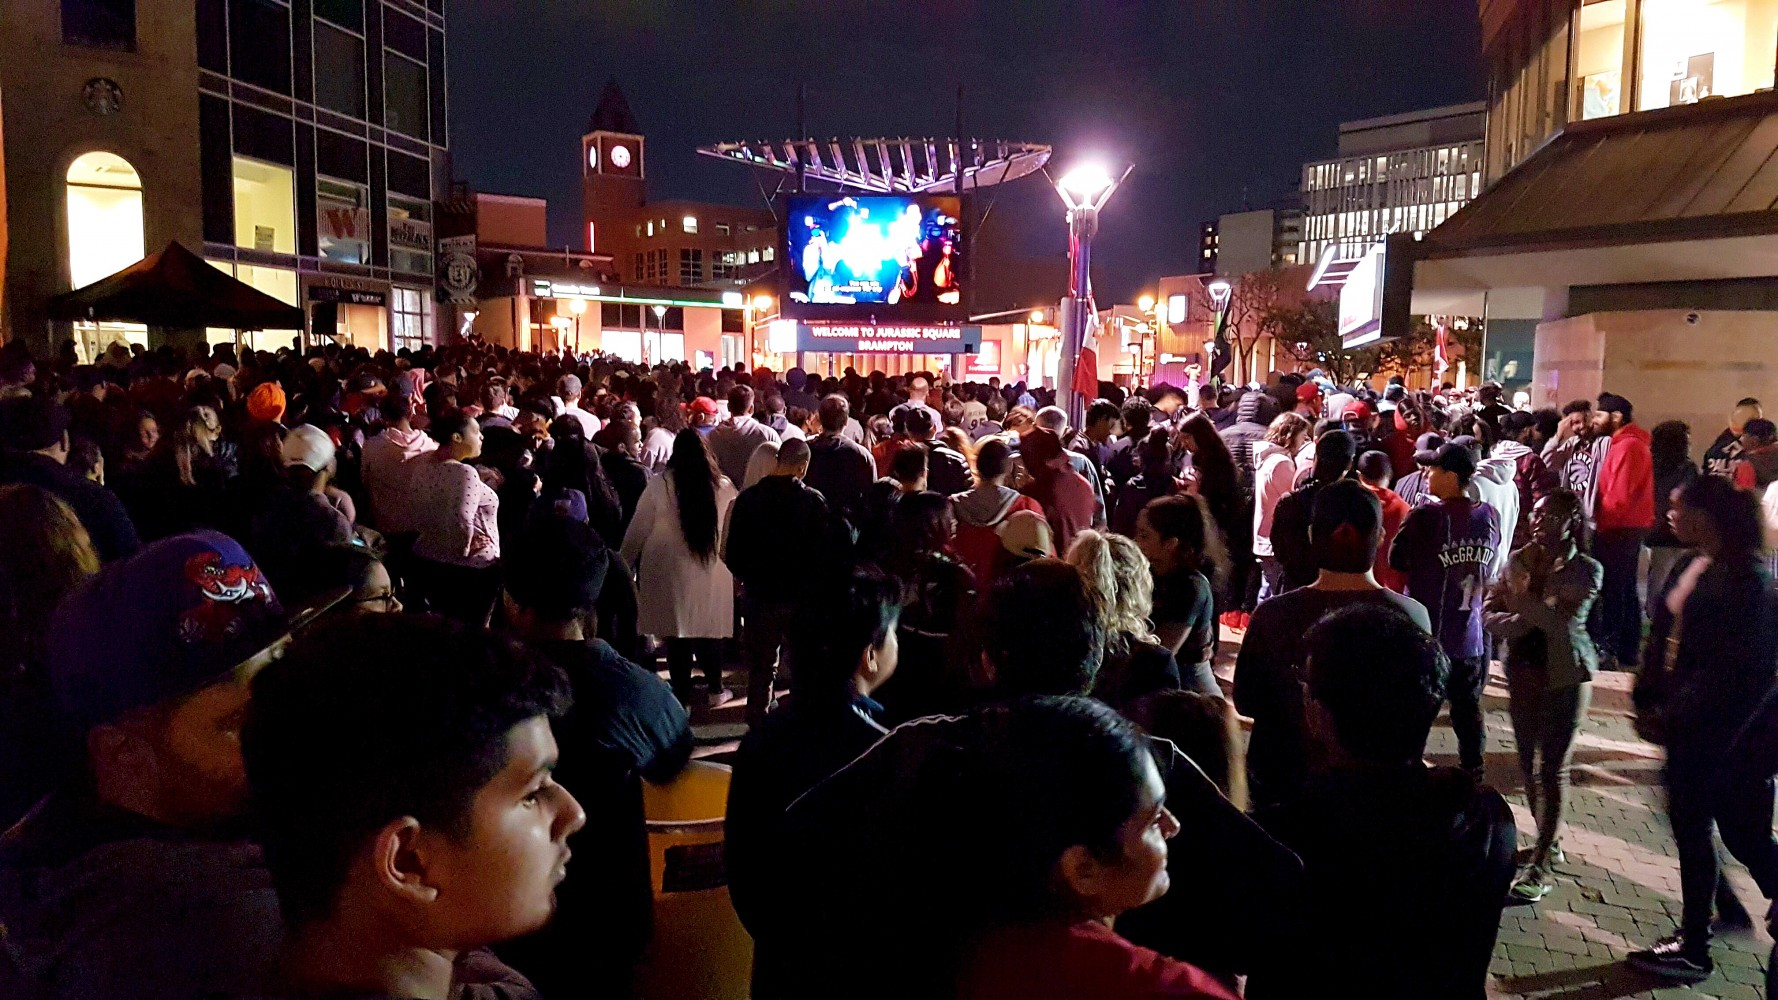 The gathering of people in a downtown square reminds us that we want to be together